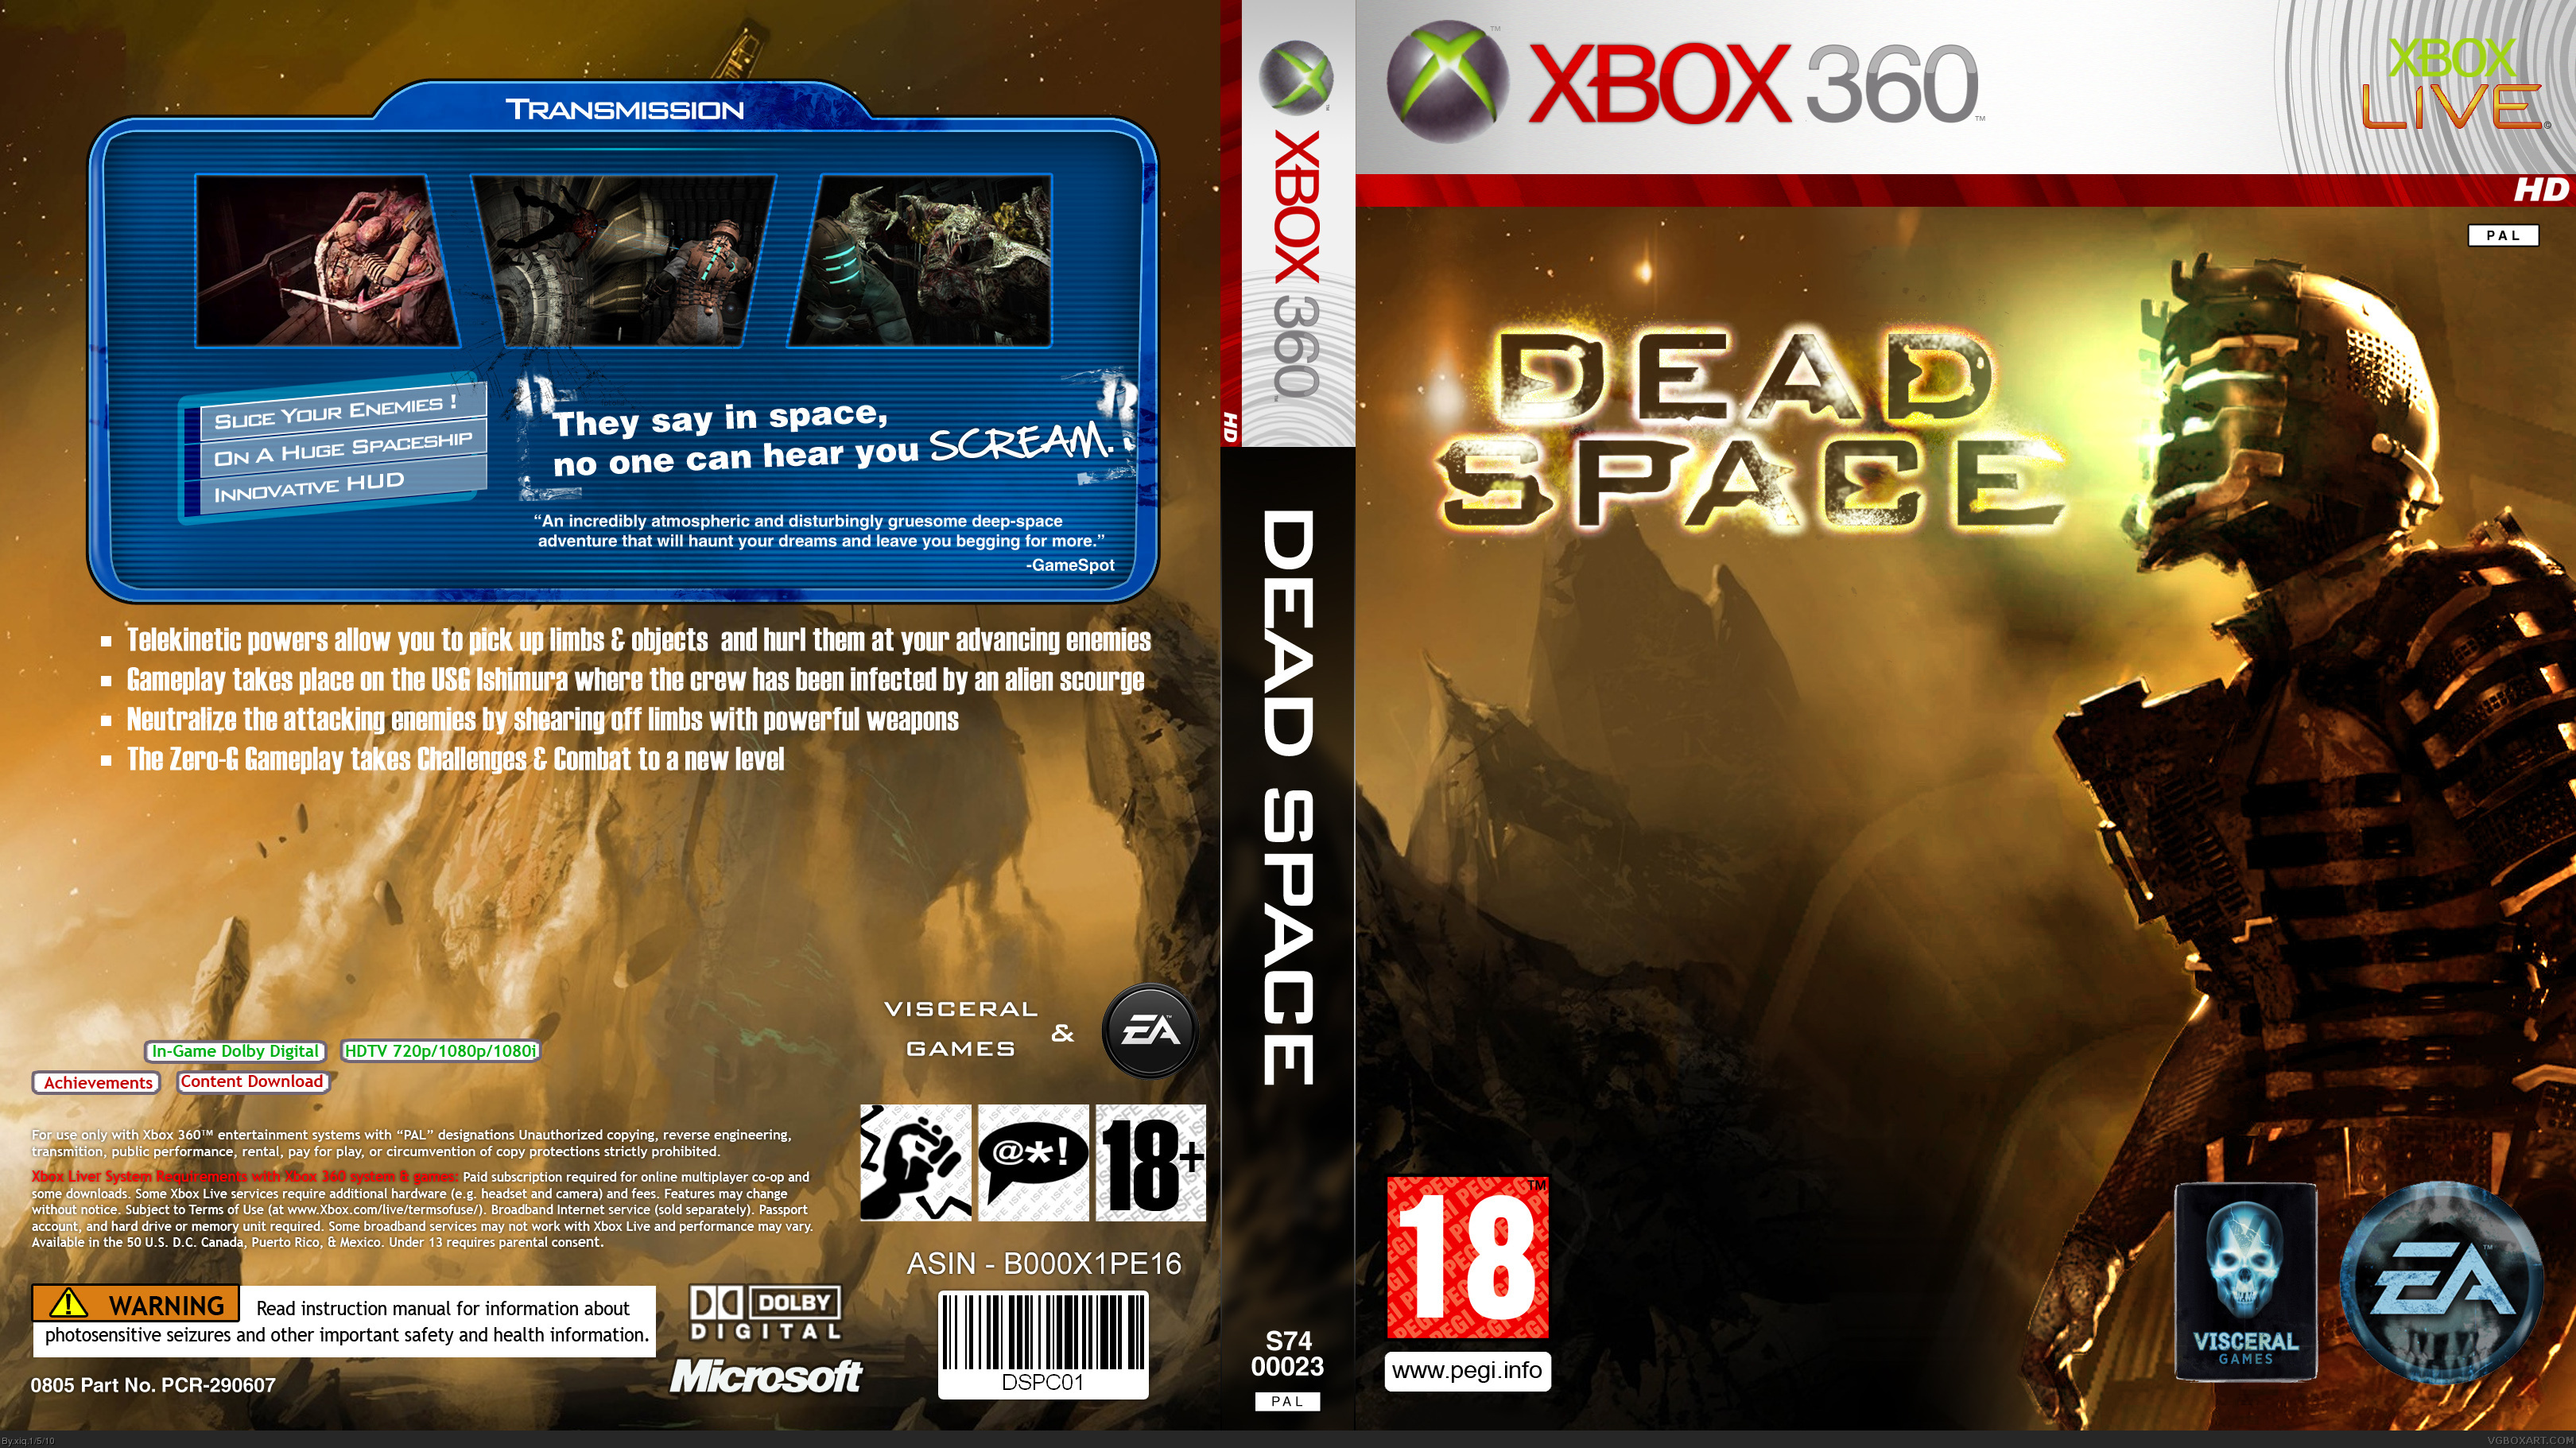 dead space xbox 360 box art cover by xiq rh vgboxart com Dead Space Storyline Review Dead Space